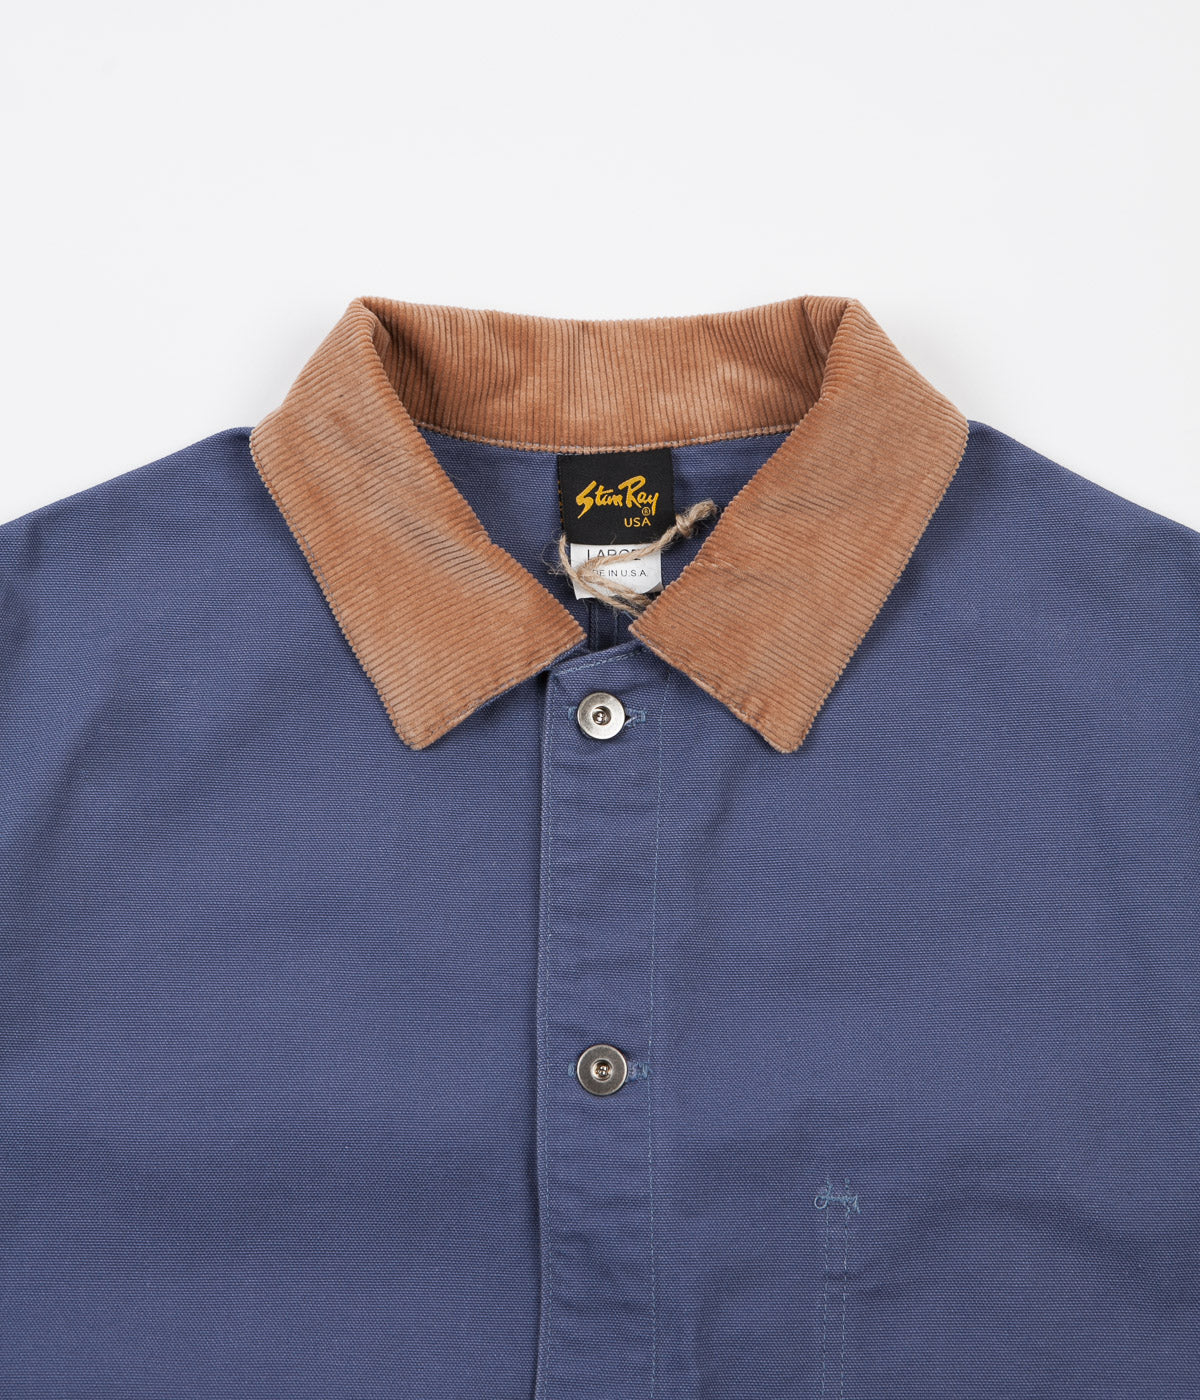 Stan Ray Archive Jacket - Garage Blue Duck